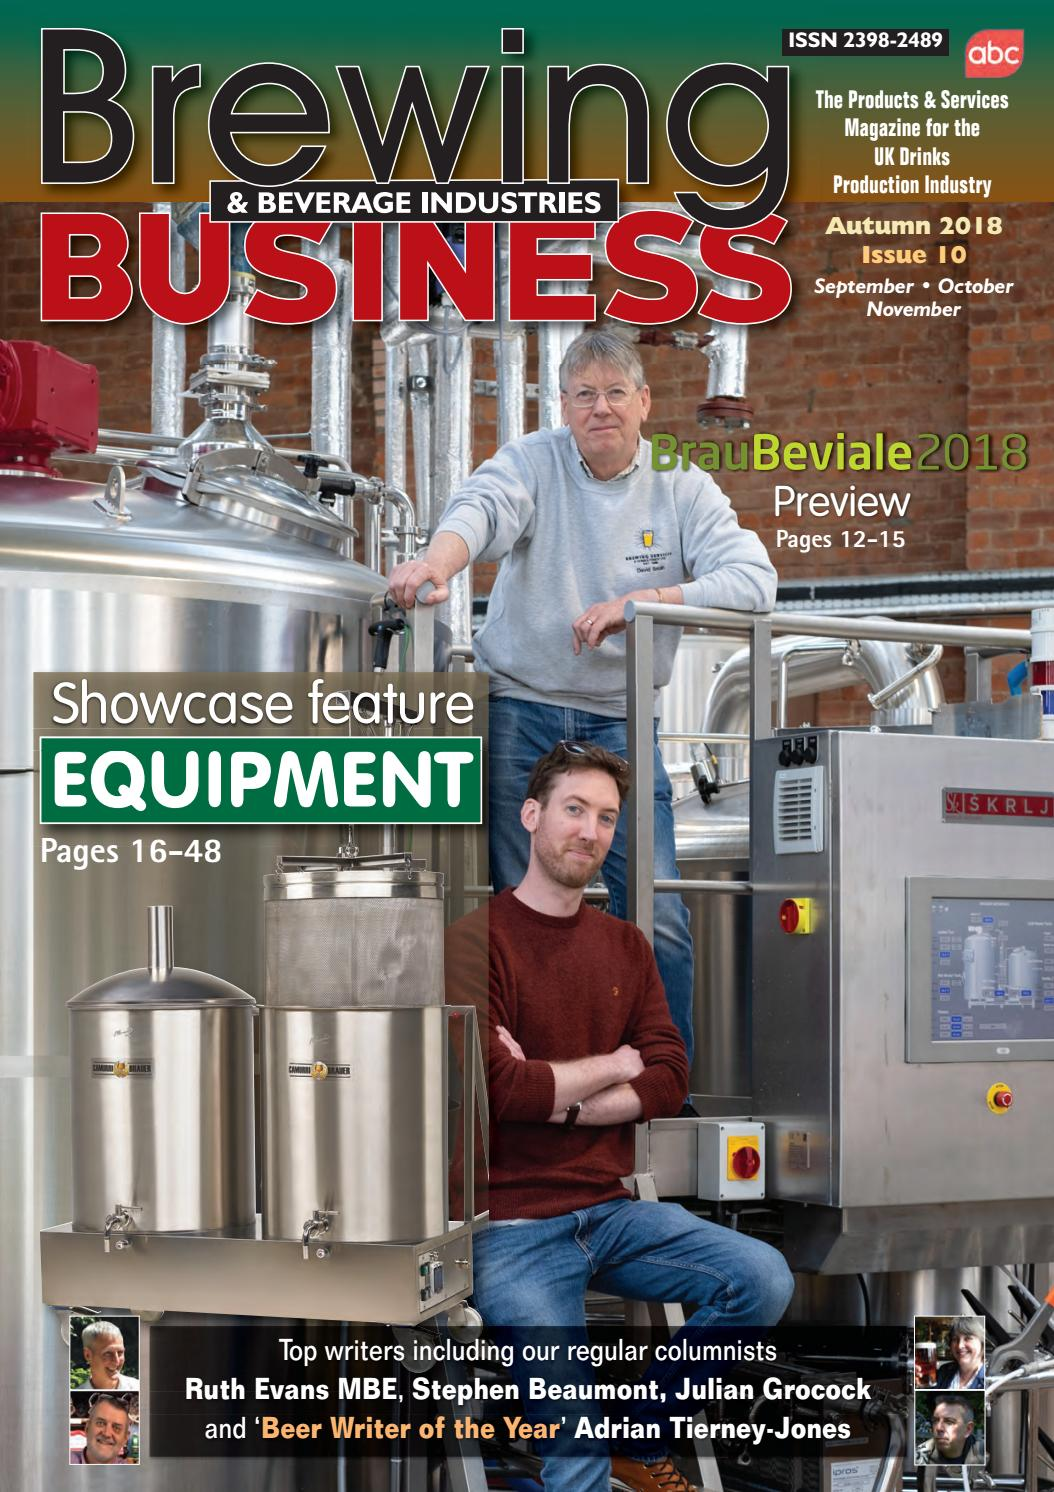 Brewing & Beverage Industries Business, issue 10 by Brewing & Beverage  Industries Business - issuu